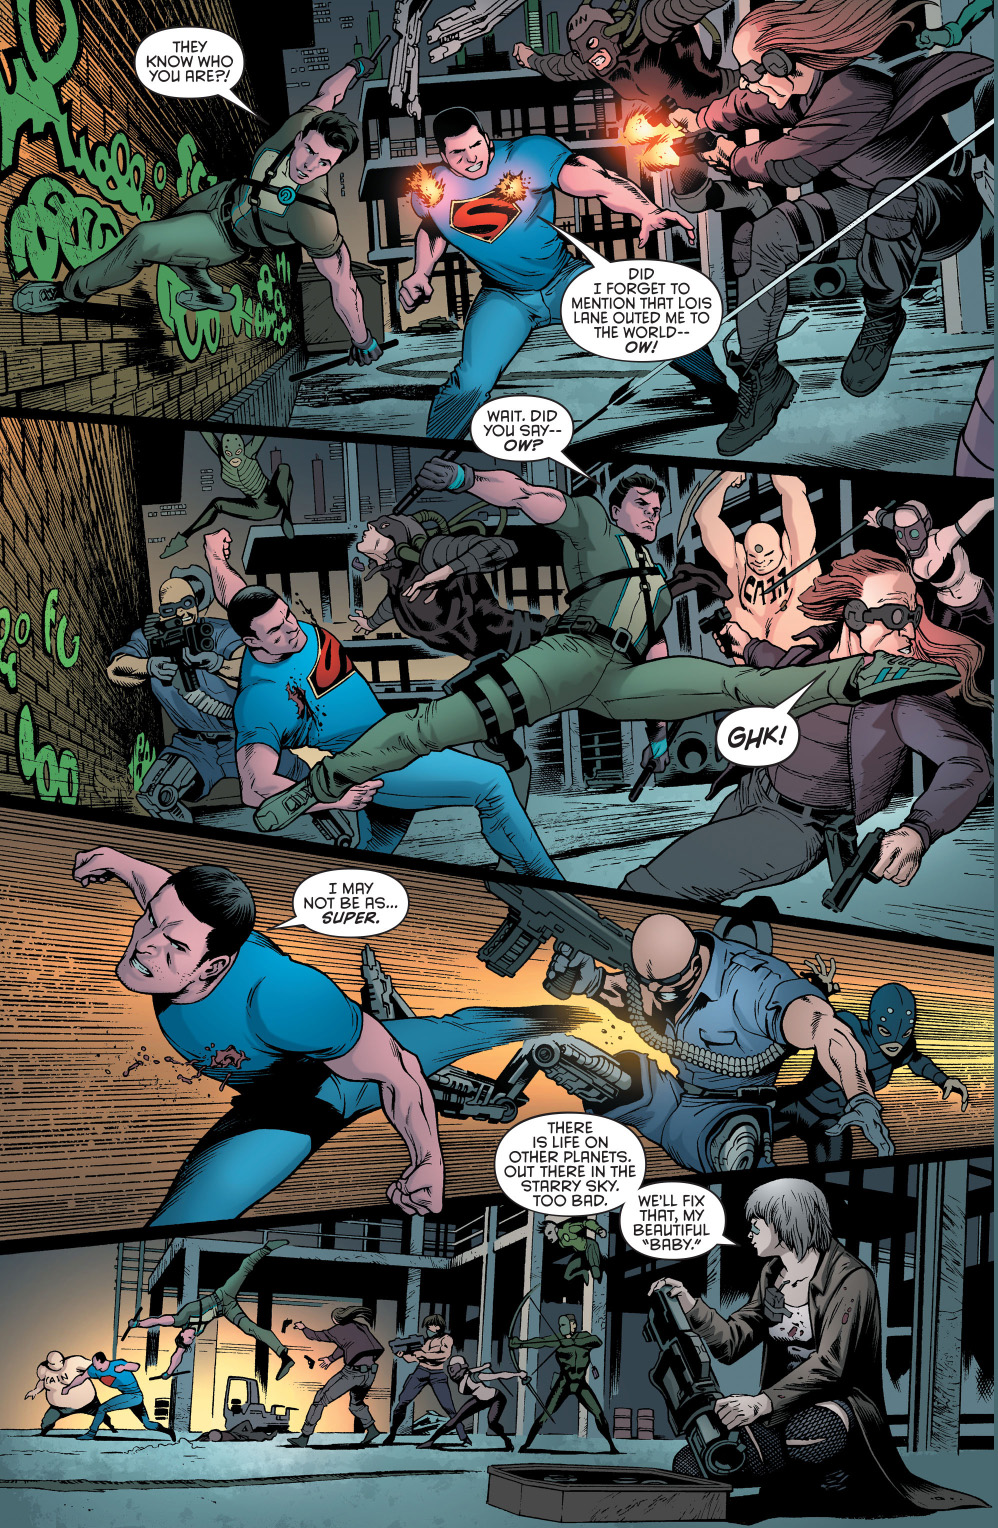 superman and dick grayson vs the fist of cain